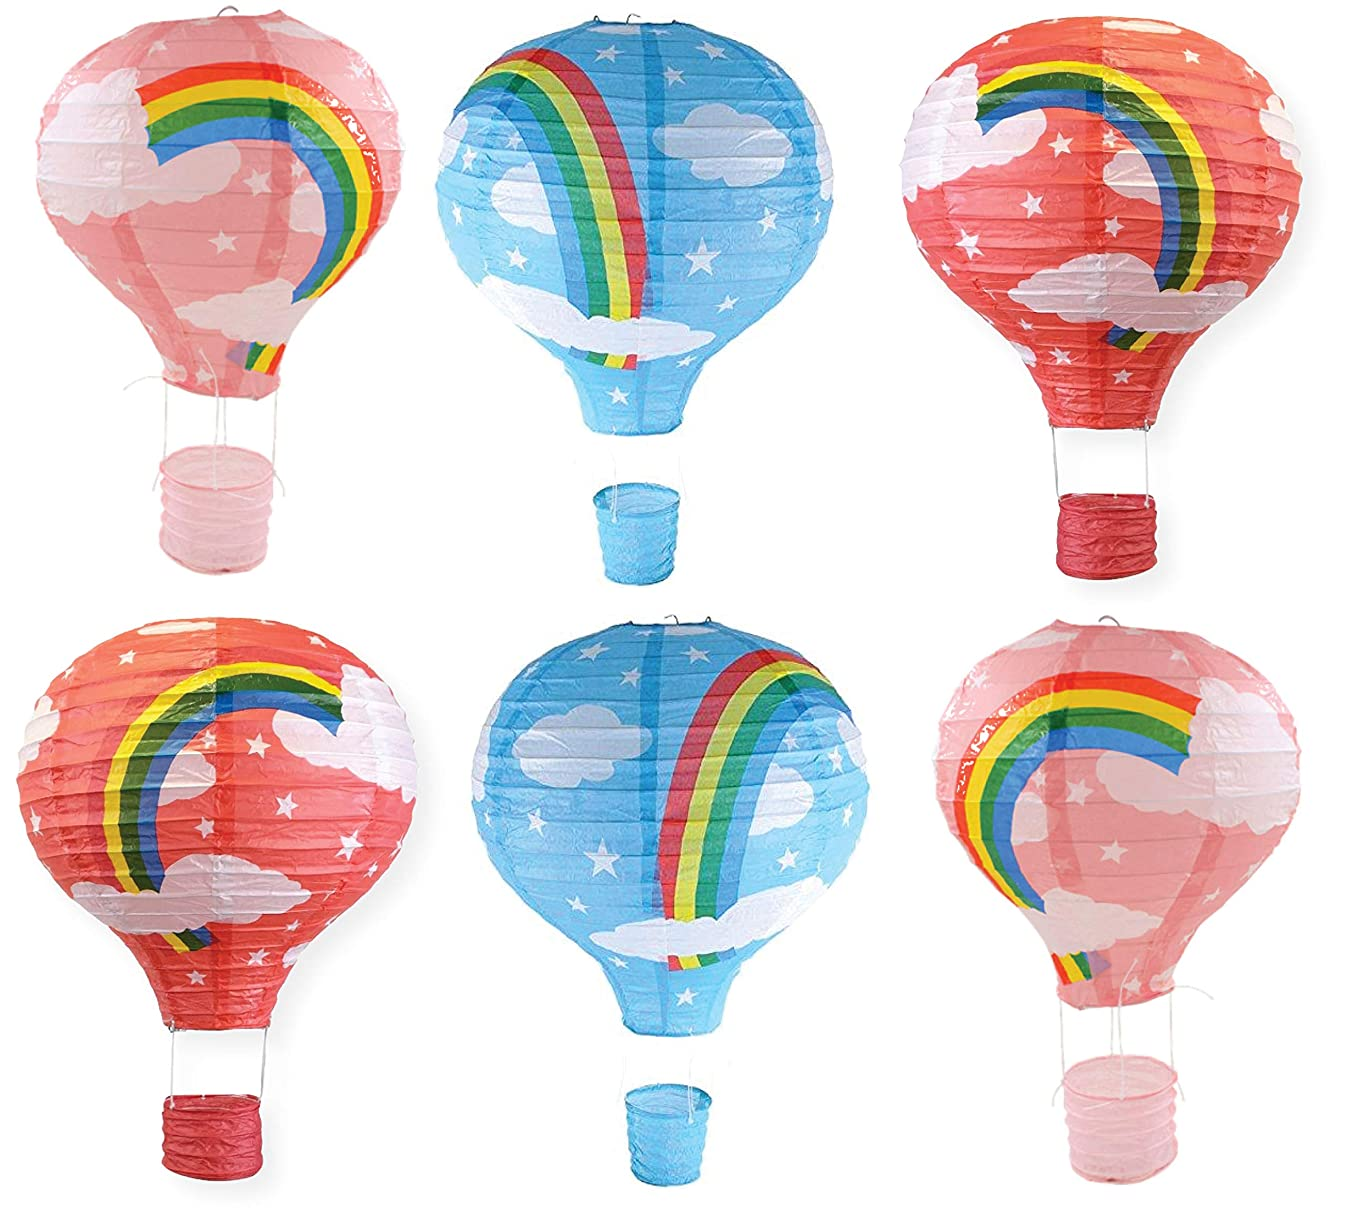 Hanging Rainbow Hot Air Balloon Paper Lanterns Set Party Decoration Birthday Wedding Christmas Party Decor Gift, 12 inch, Pack of 6 Pieces